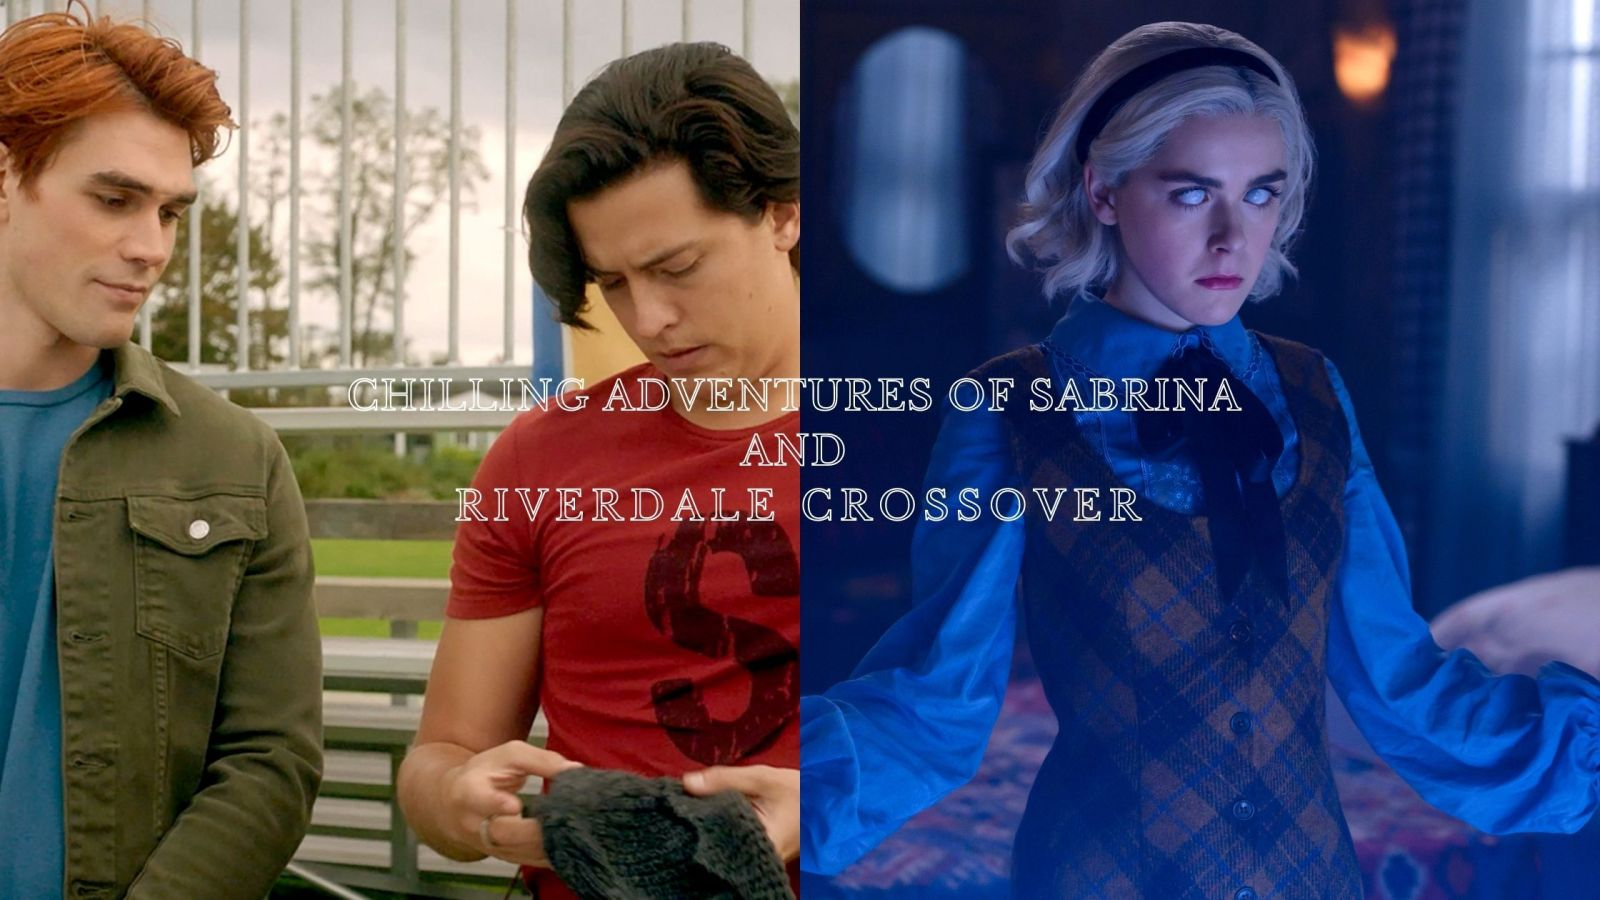 Chilling Adventures of Sabrina and Riverdale Crossover